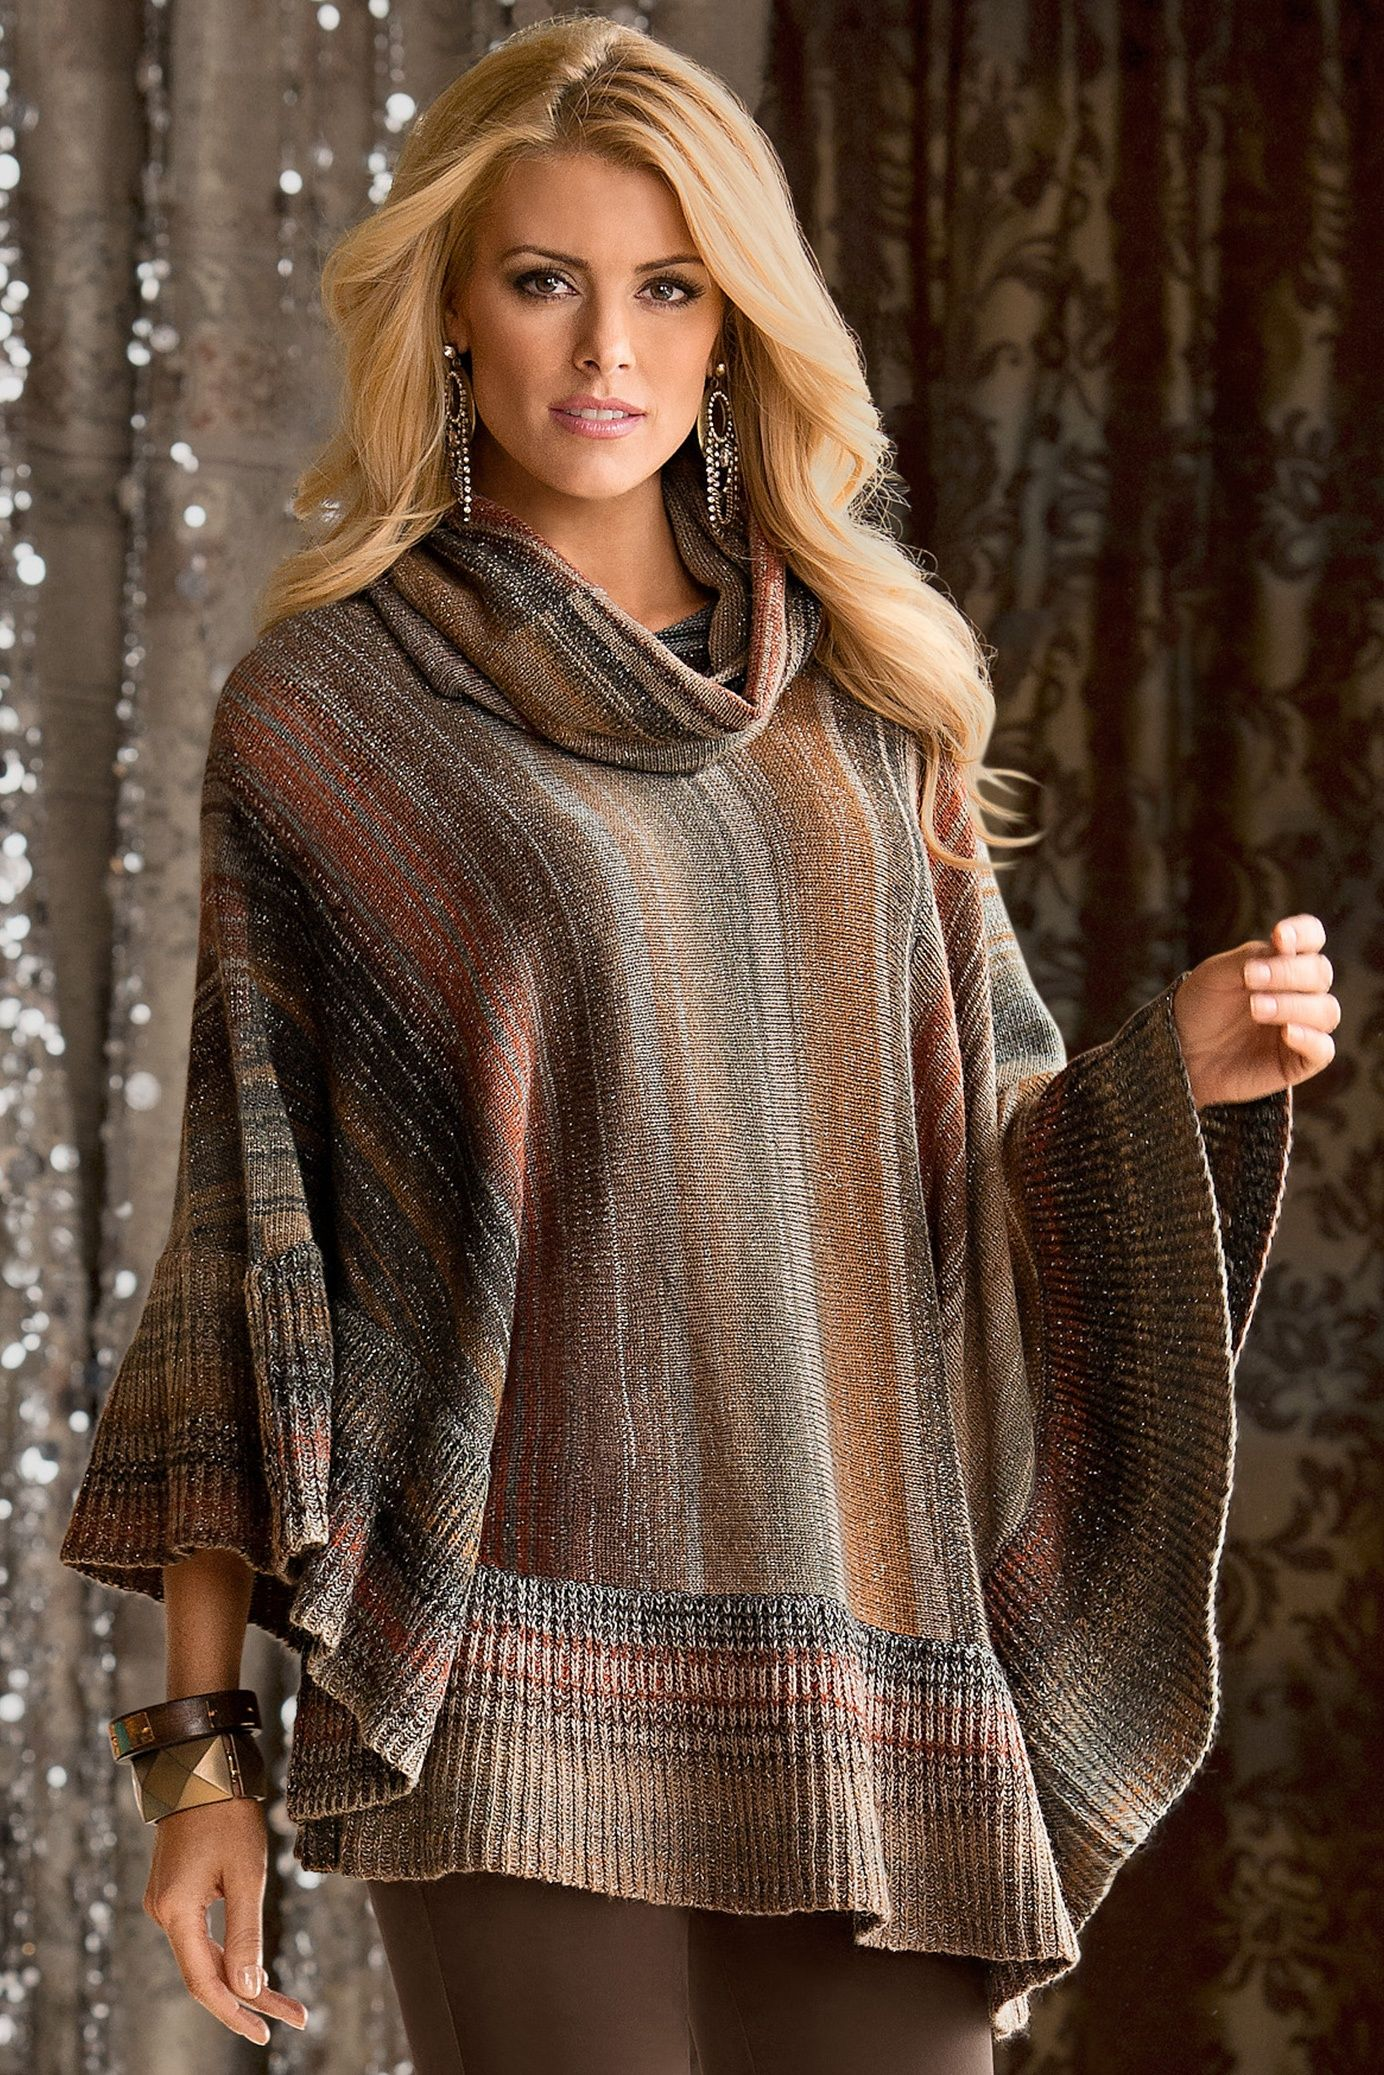 Boston Proper Lurex cowl-neck poncho #bostonproper | Style ...